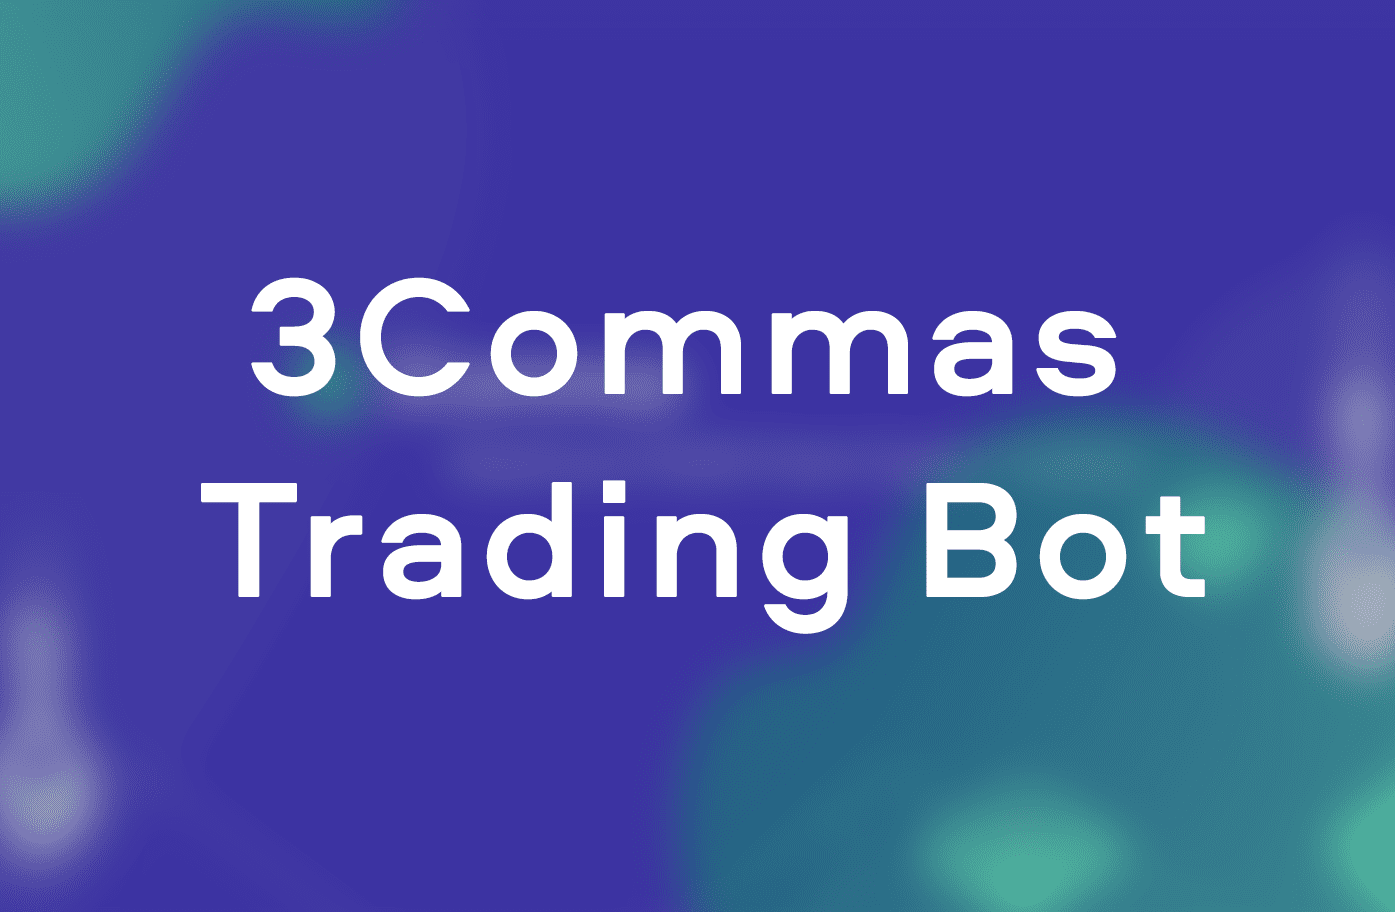 3commas trading bot review by safetrading